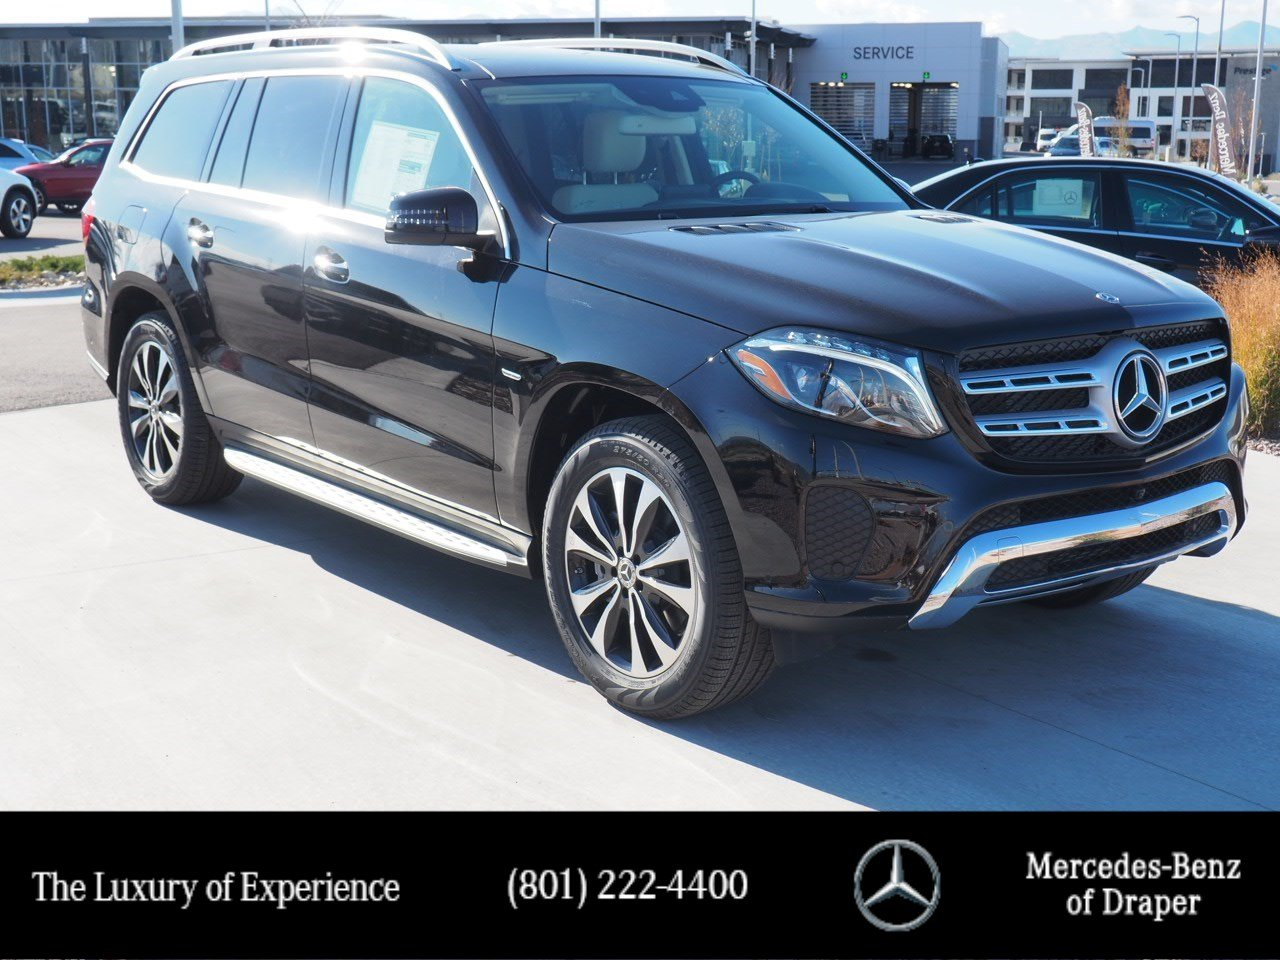 New 2019 Mercedes Benz Gls 450 Suv In Draper Kb208359 C230 Panel Speaker On Wiring Harness For Trailer Hitch